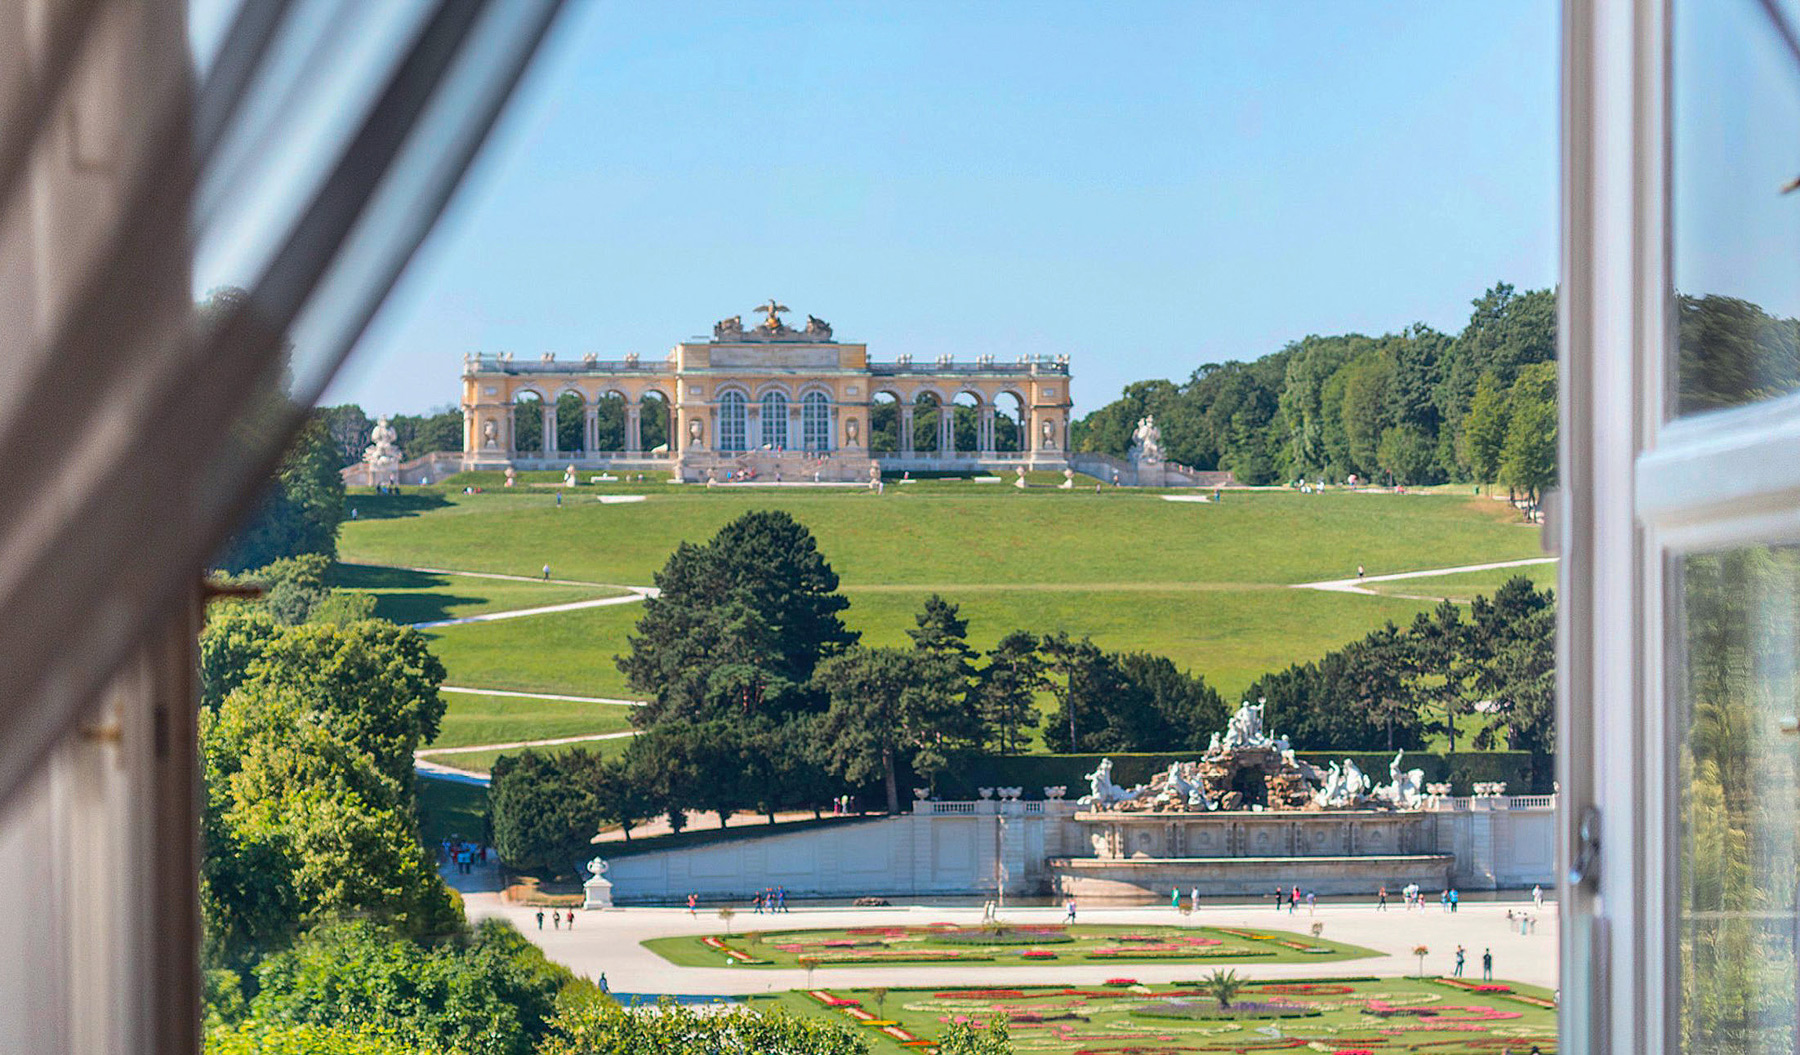 Experiencing A Very Royal Lifestyle at Schönbrunn Palace in Austria